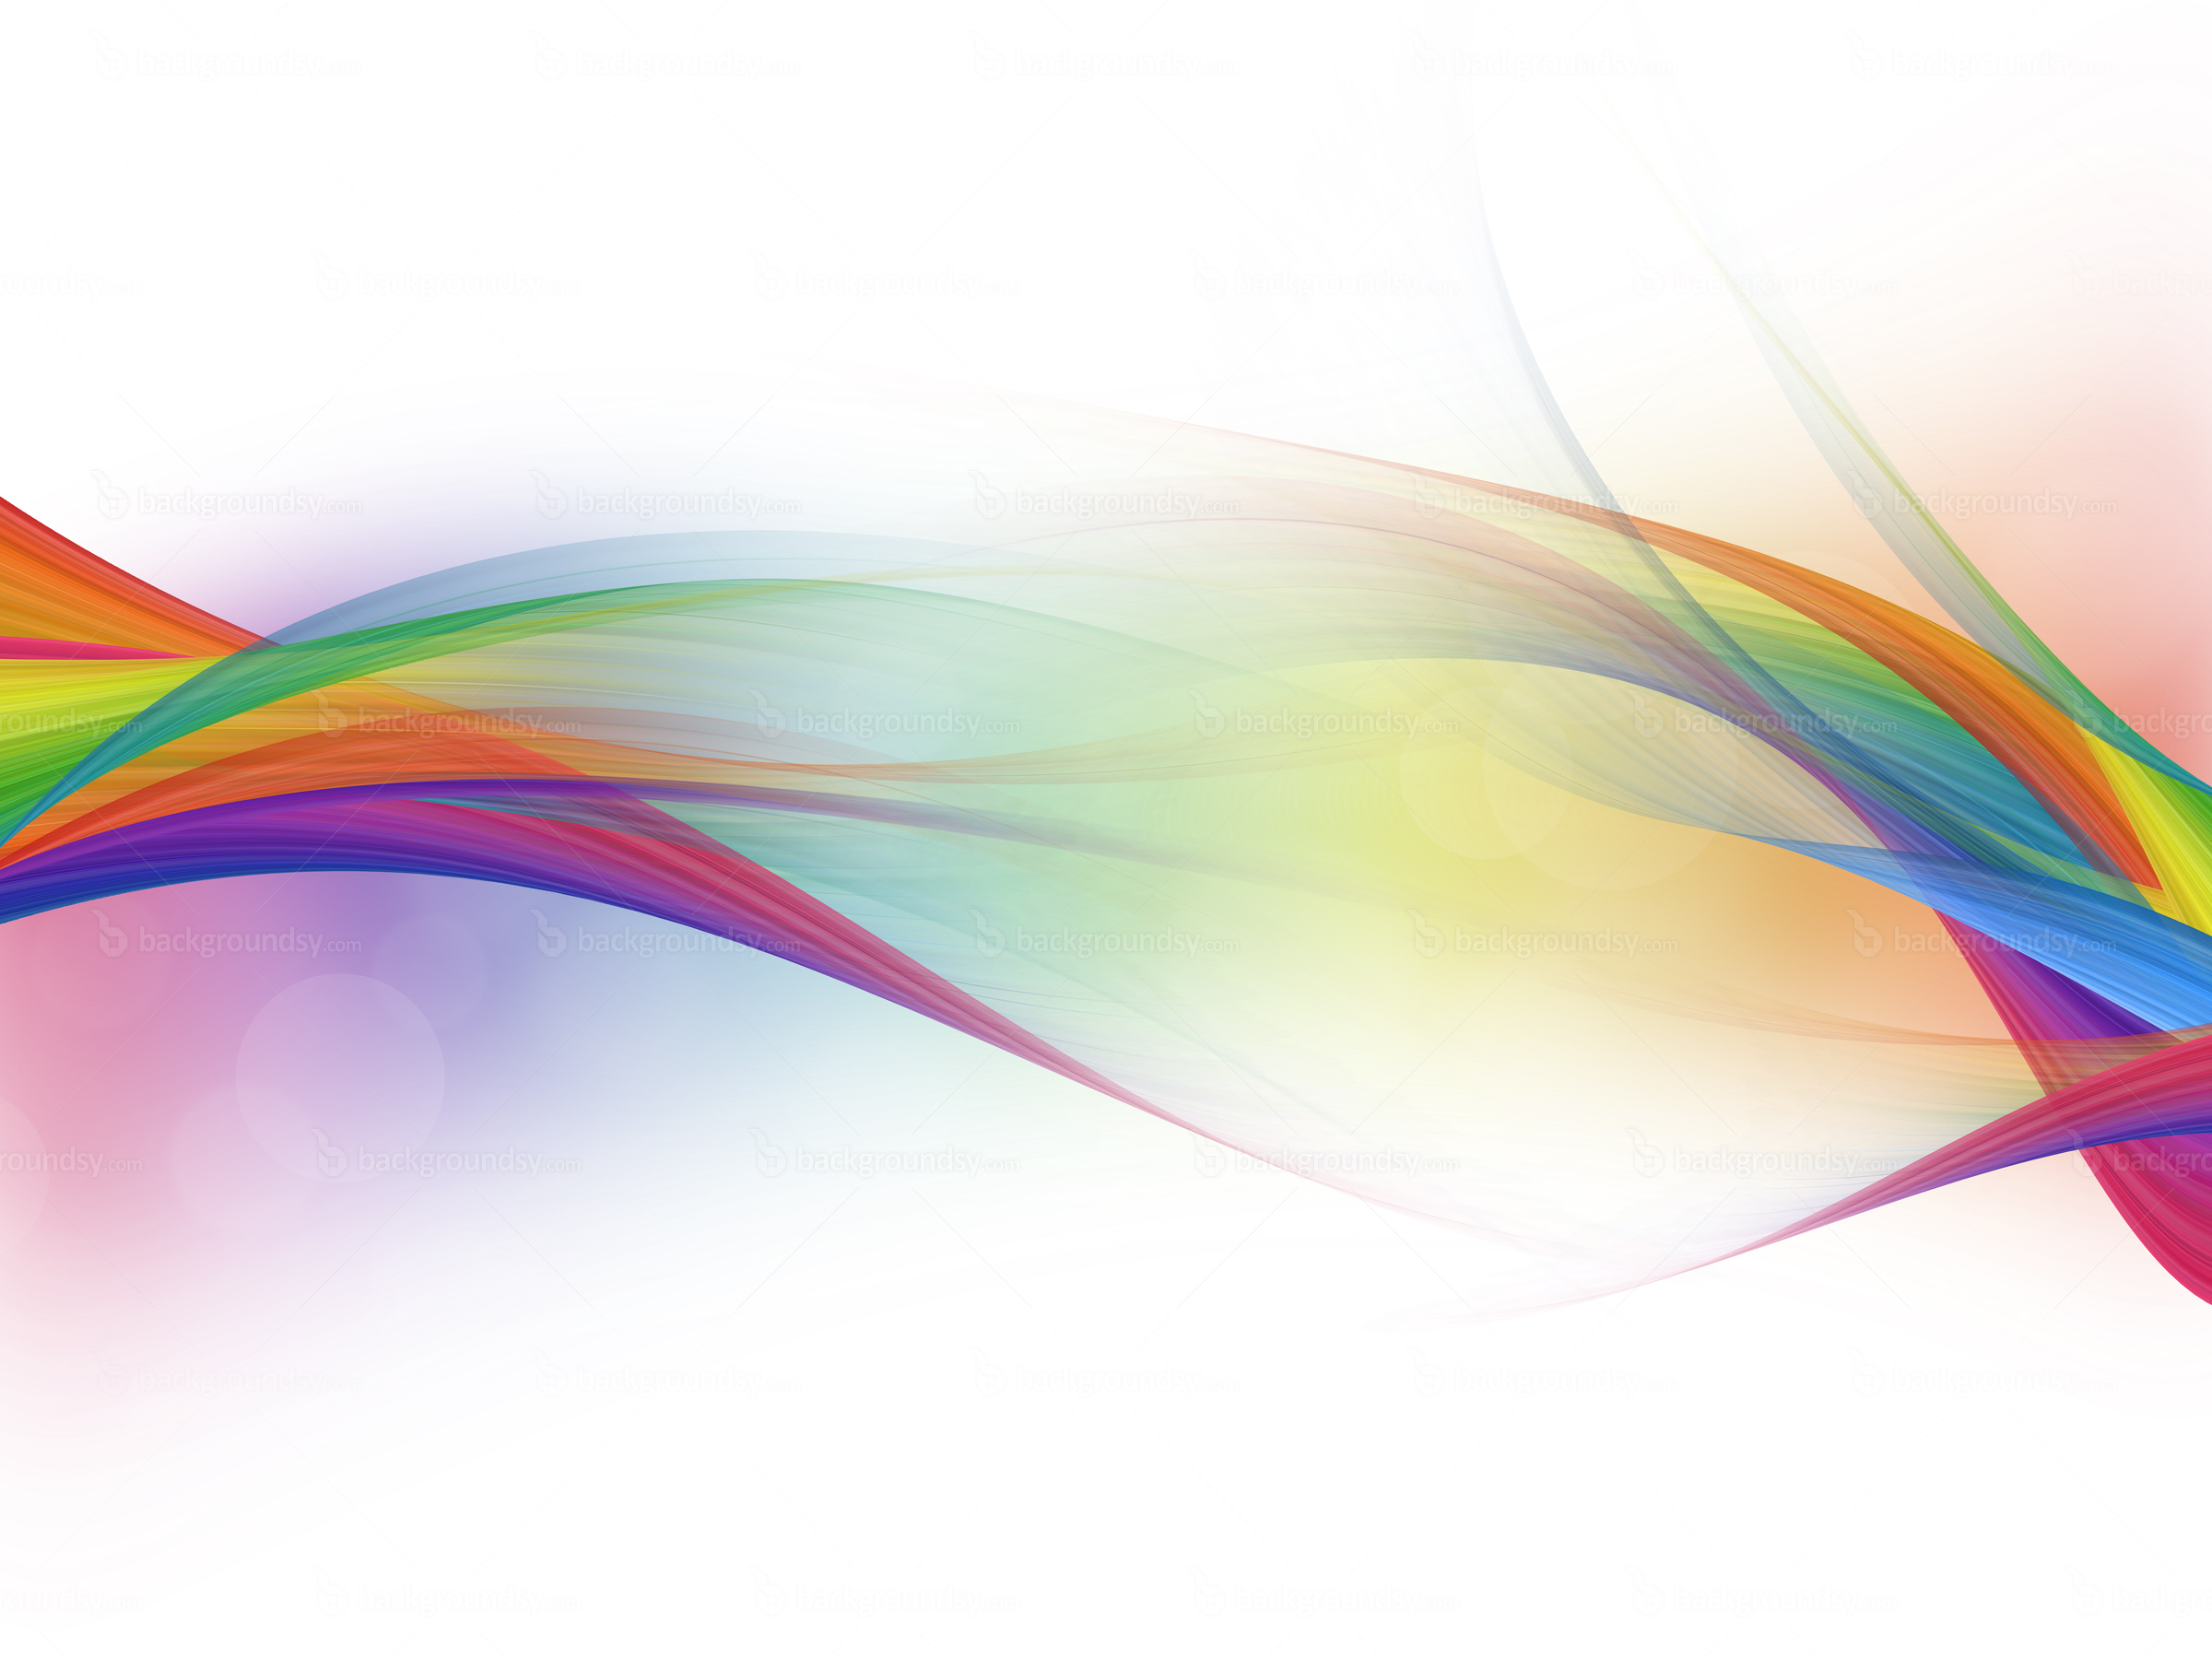 Image search Extra Large Colorful Backgrounds Vol1 No6 2560x1600 2400x1800